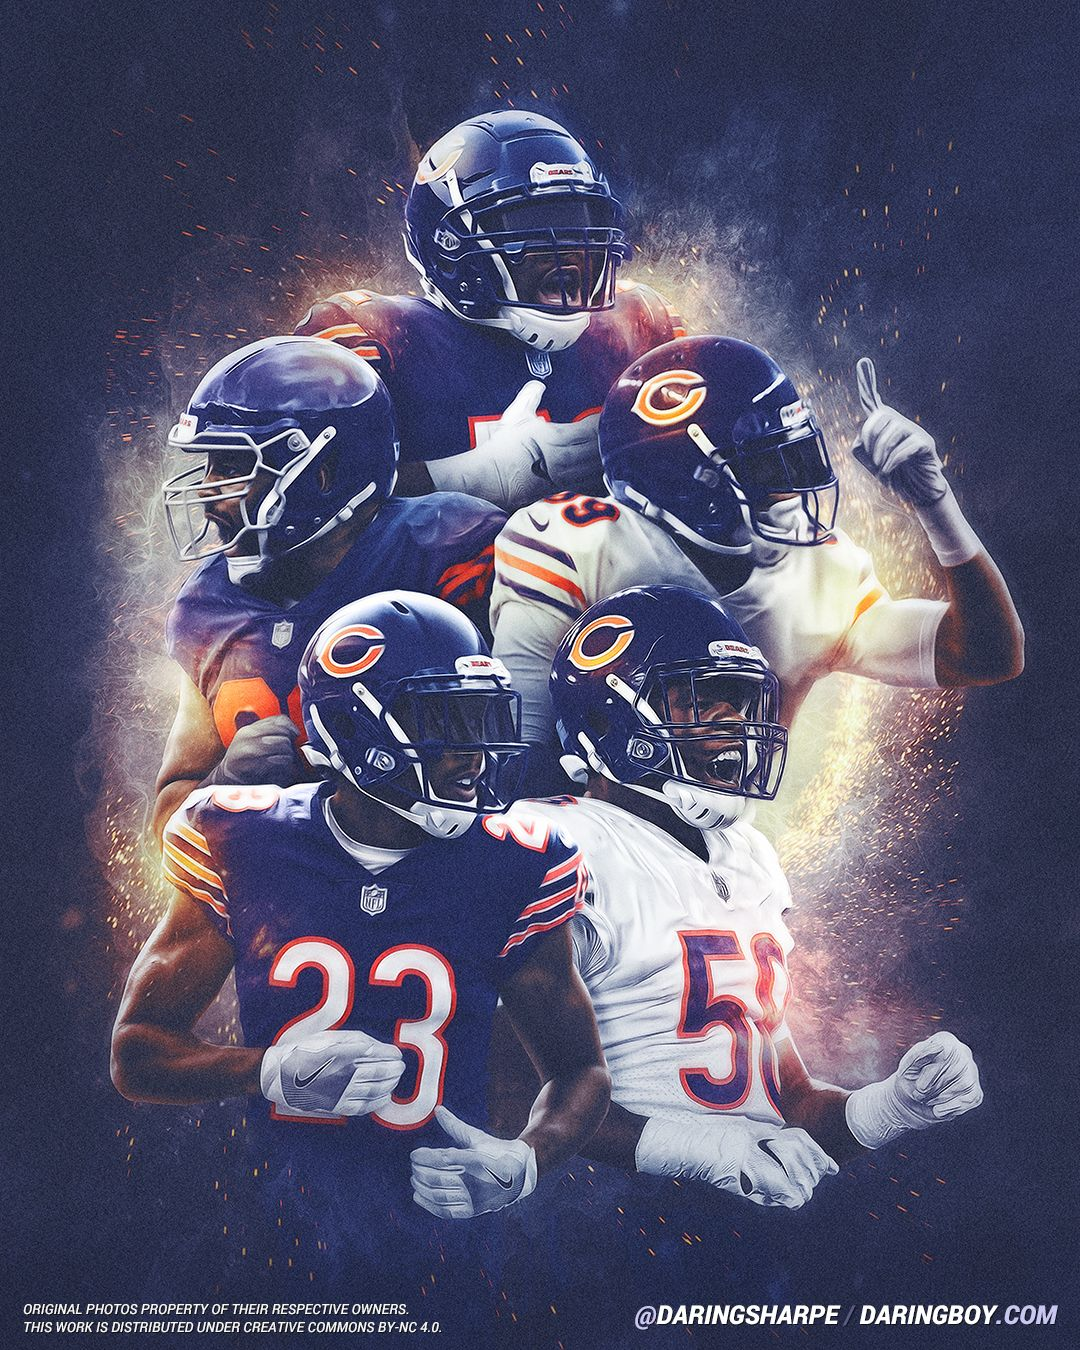 Khalil Mack Eddie Jackson Roquan Smith Kyle Fuller Akiem Hicks Chicago Bears Chicago Bears Wallpaper Chicago Bears Pictures Nfl Bears